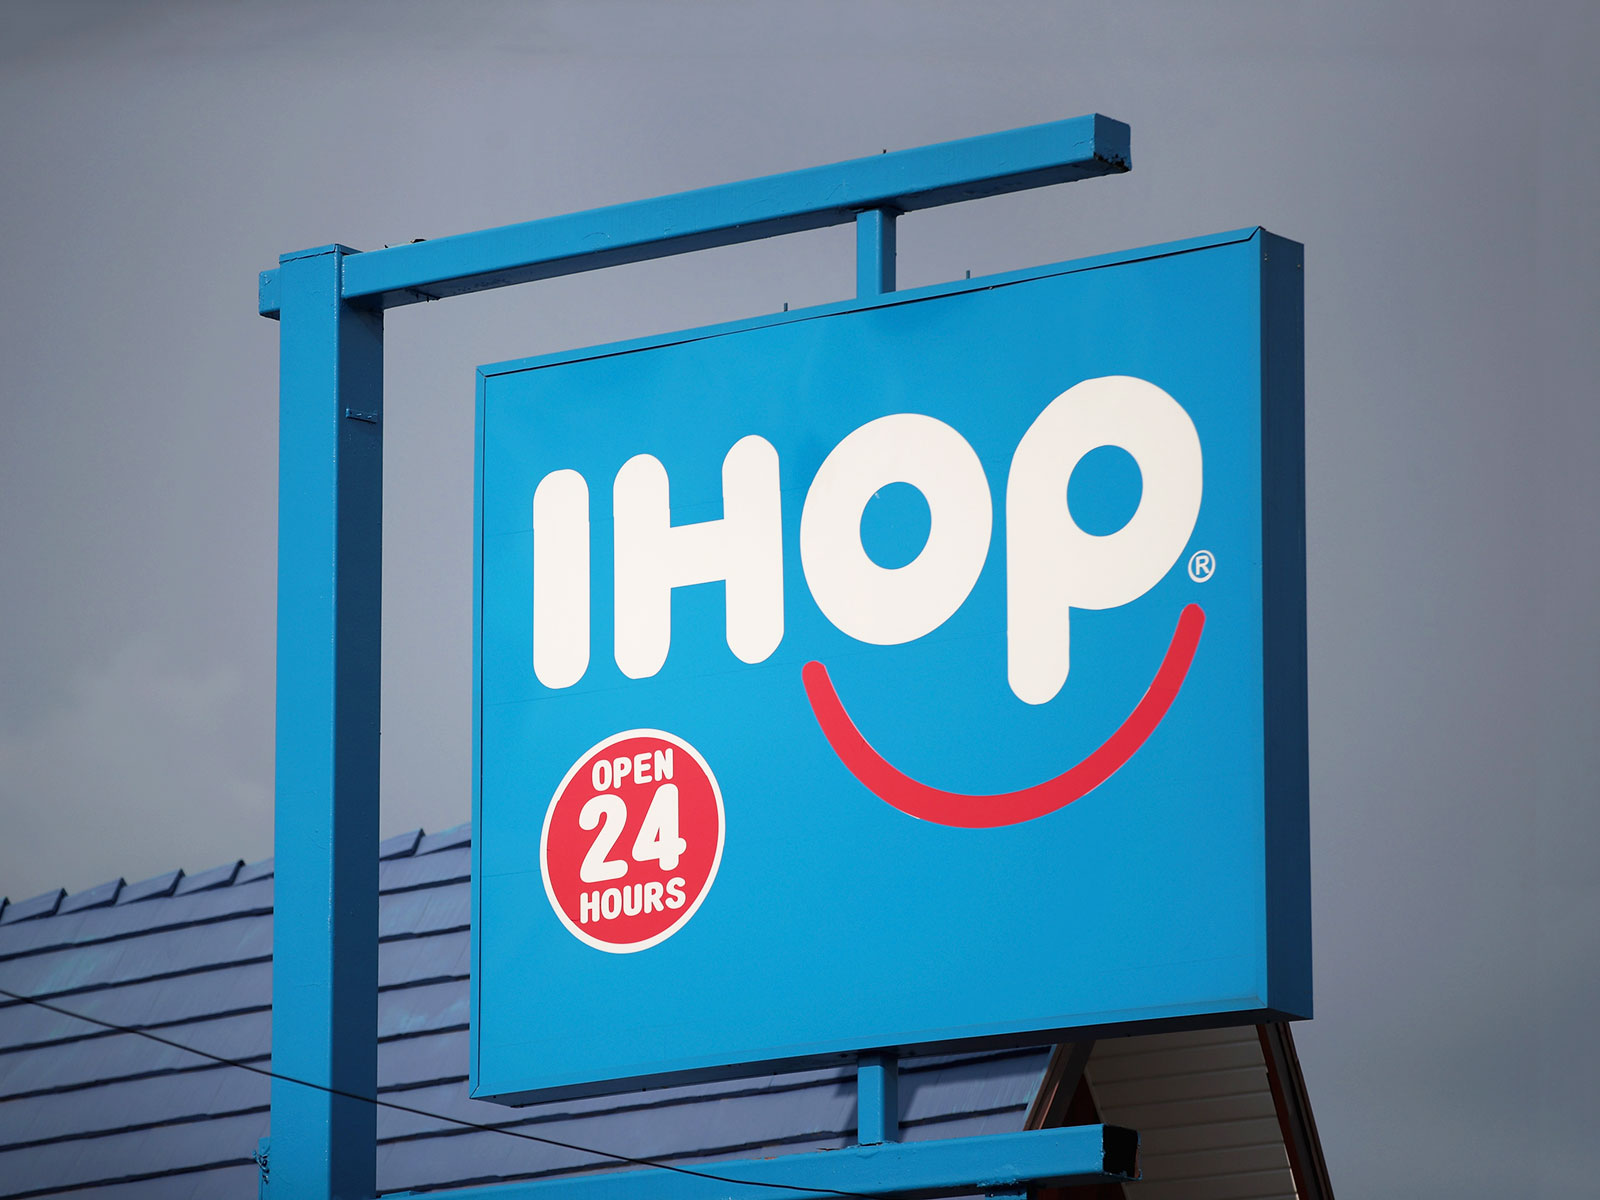 ihop food delivery service in testing